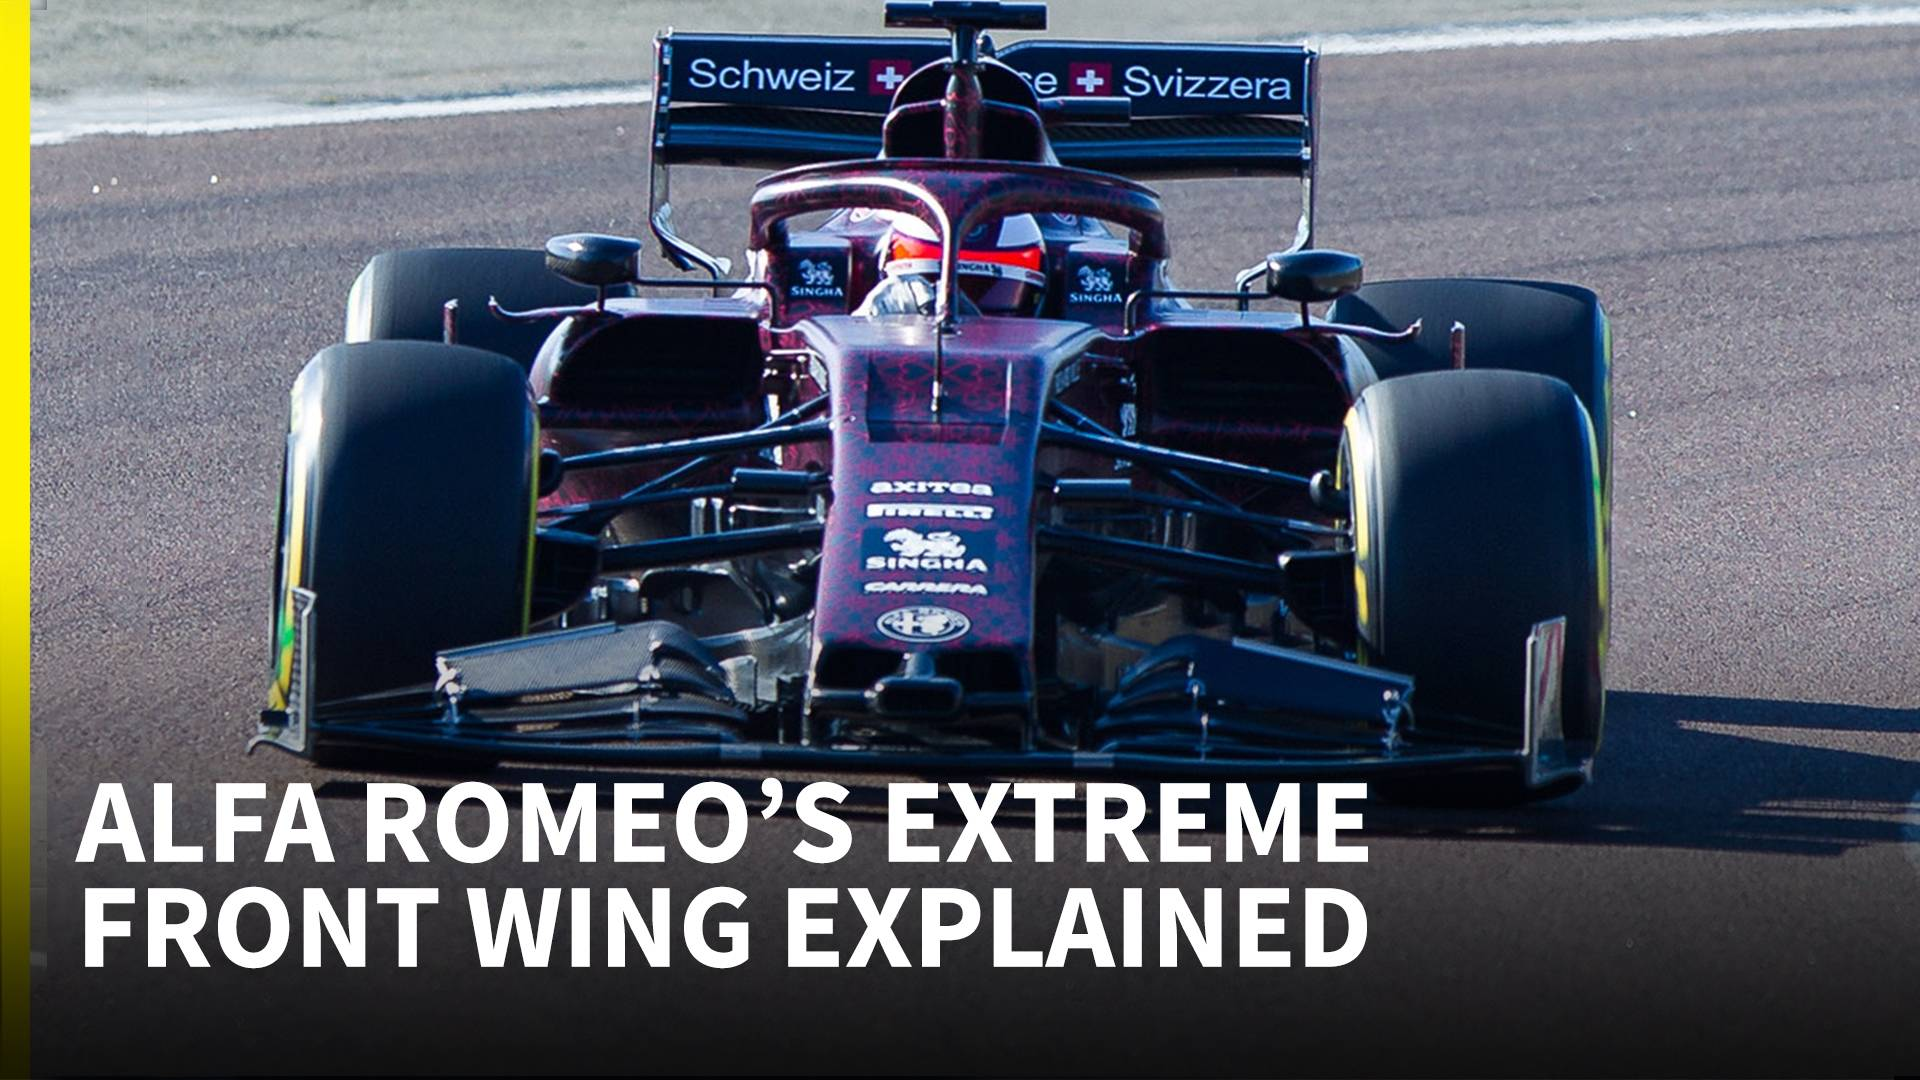 Editor Video Libre The Strangest 2019 Front Wing We Ve Seen So Far Alfa Romeo F1 Technical Analysis